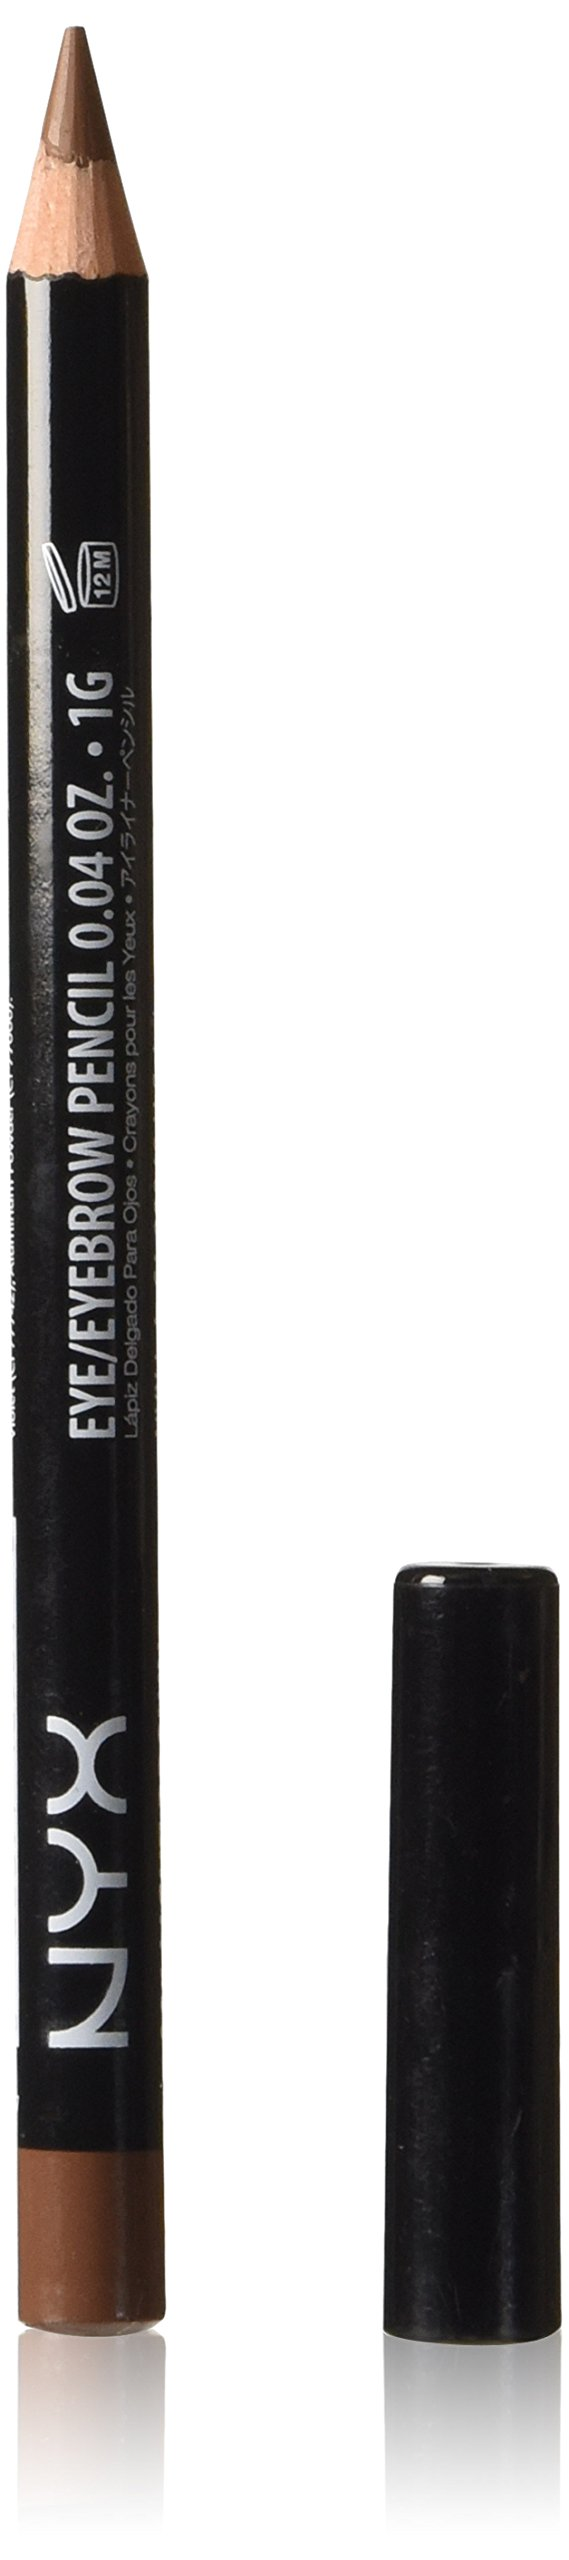 NYX Slim Eye Pencil - 904 - Light Brown